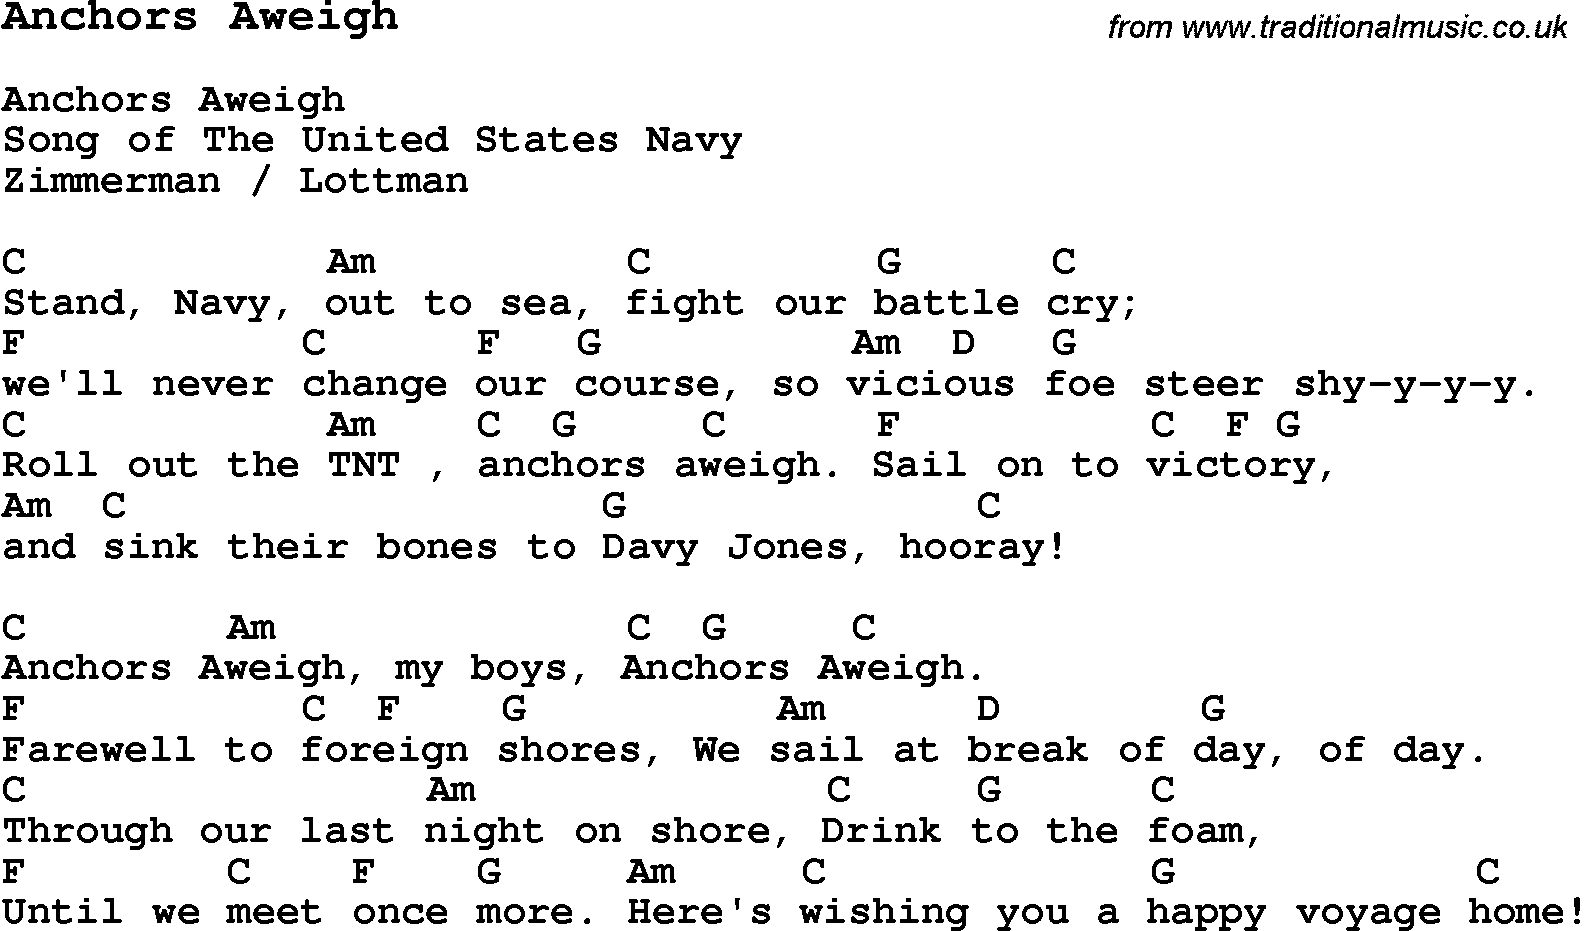 Anchors Aweigh Lyrics - YouTube